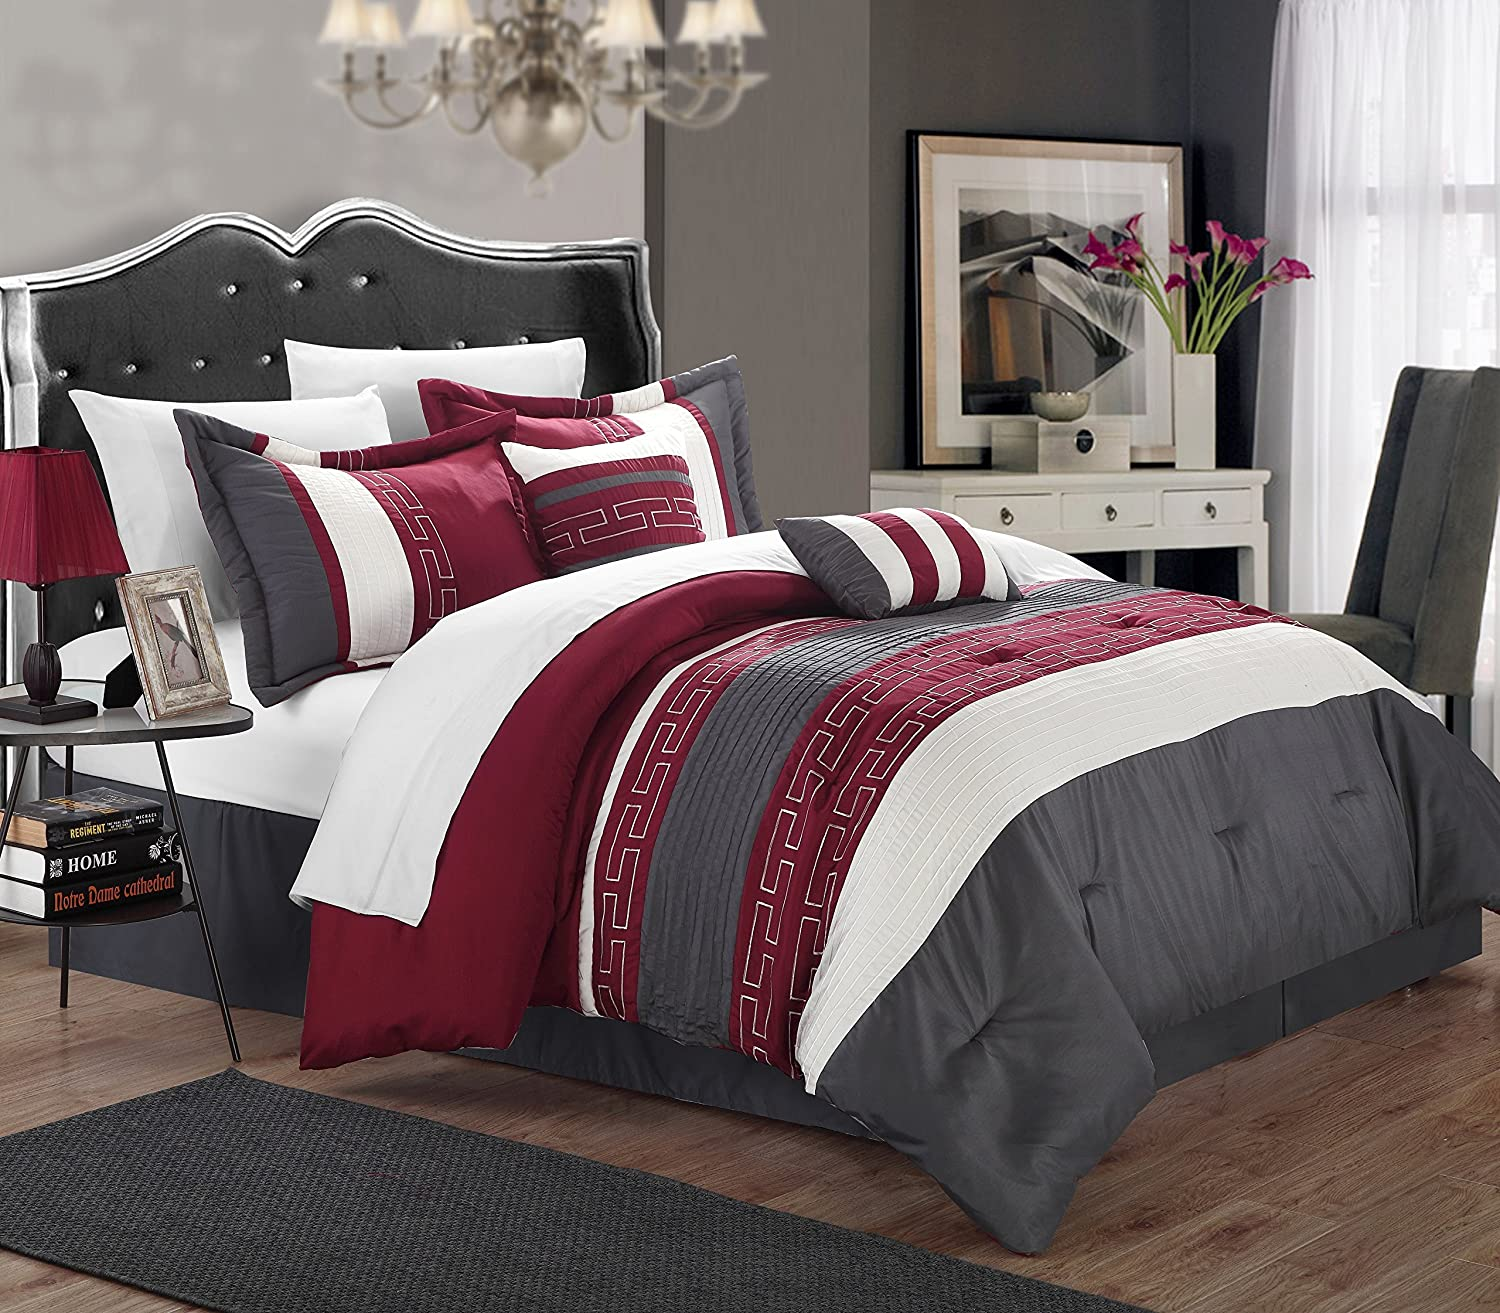 home amazing amazon blue set cheila andforter taupe piece pictures uk com black queen chic dawson picture sets color unbelievable king comforter and solid bedding